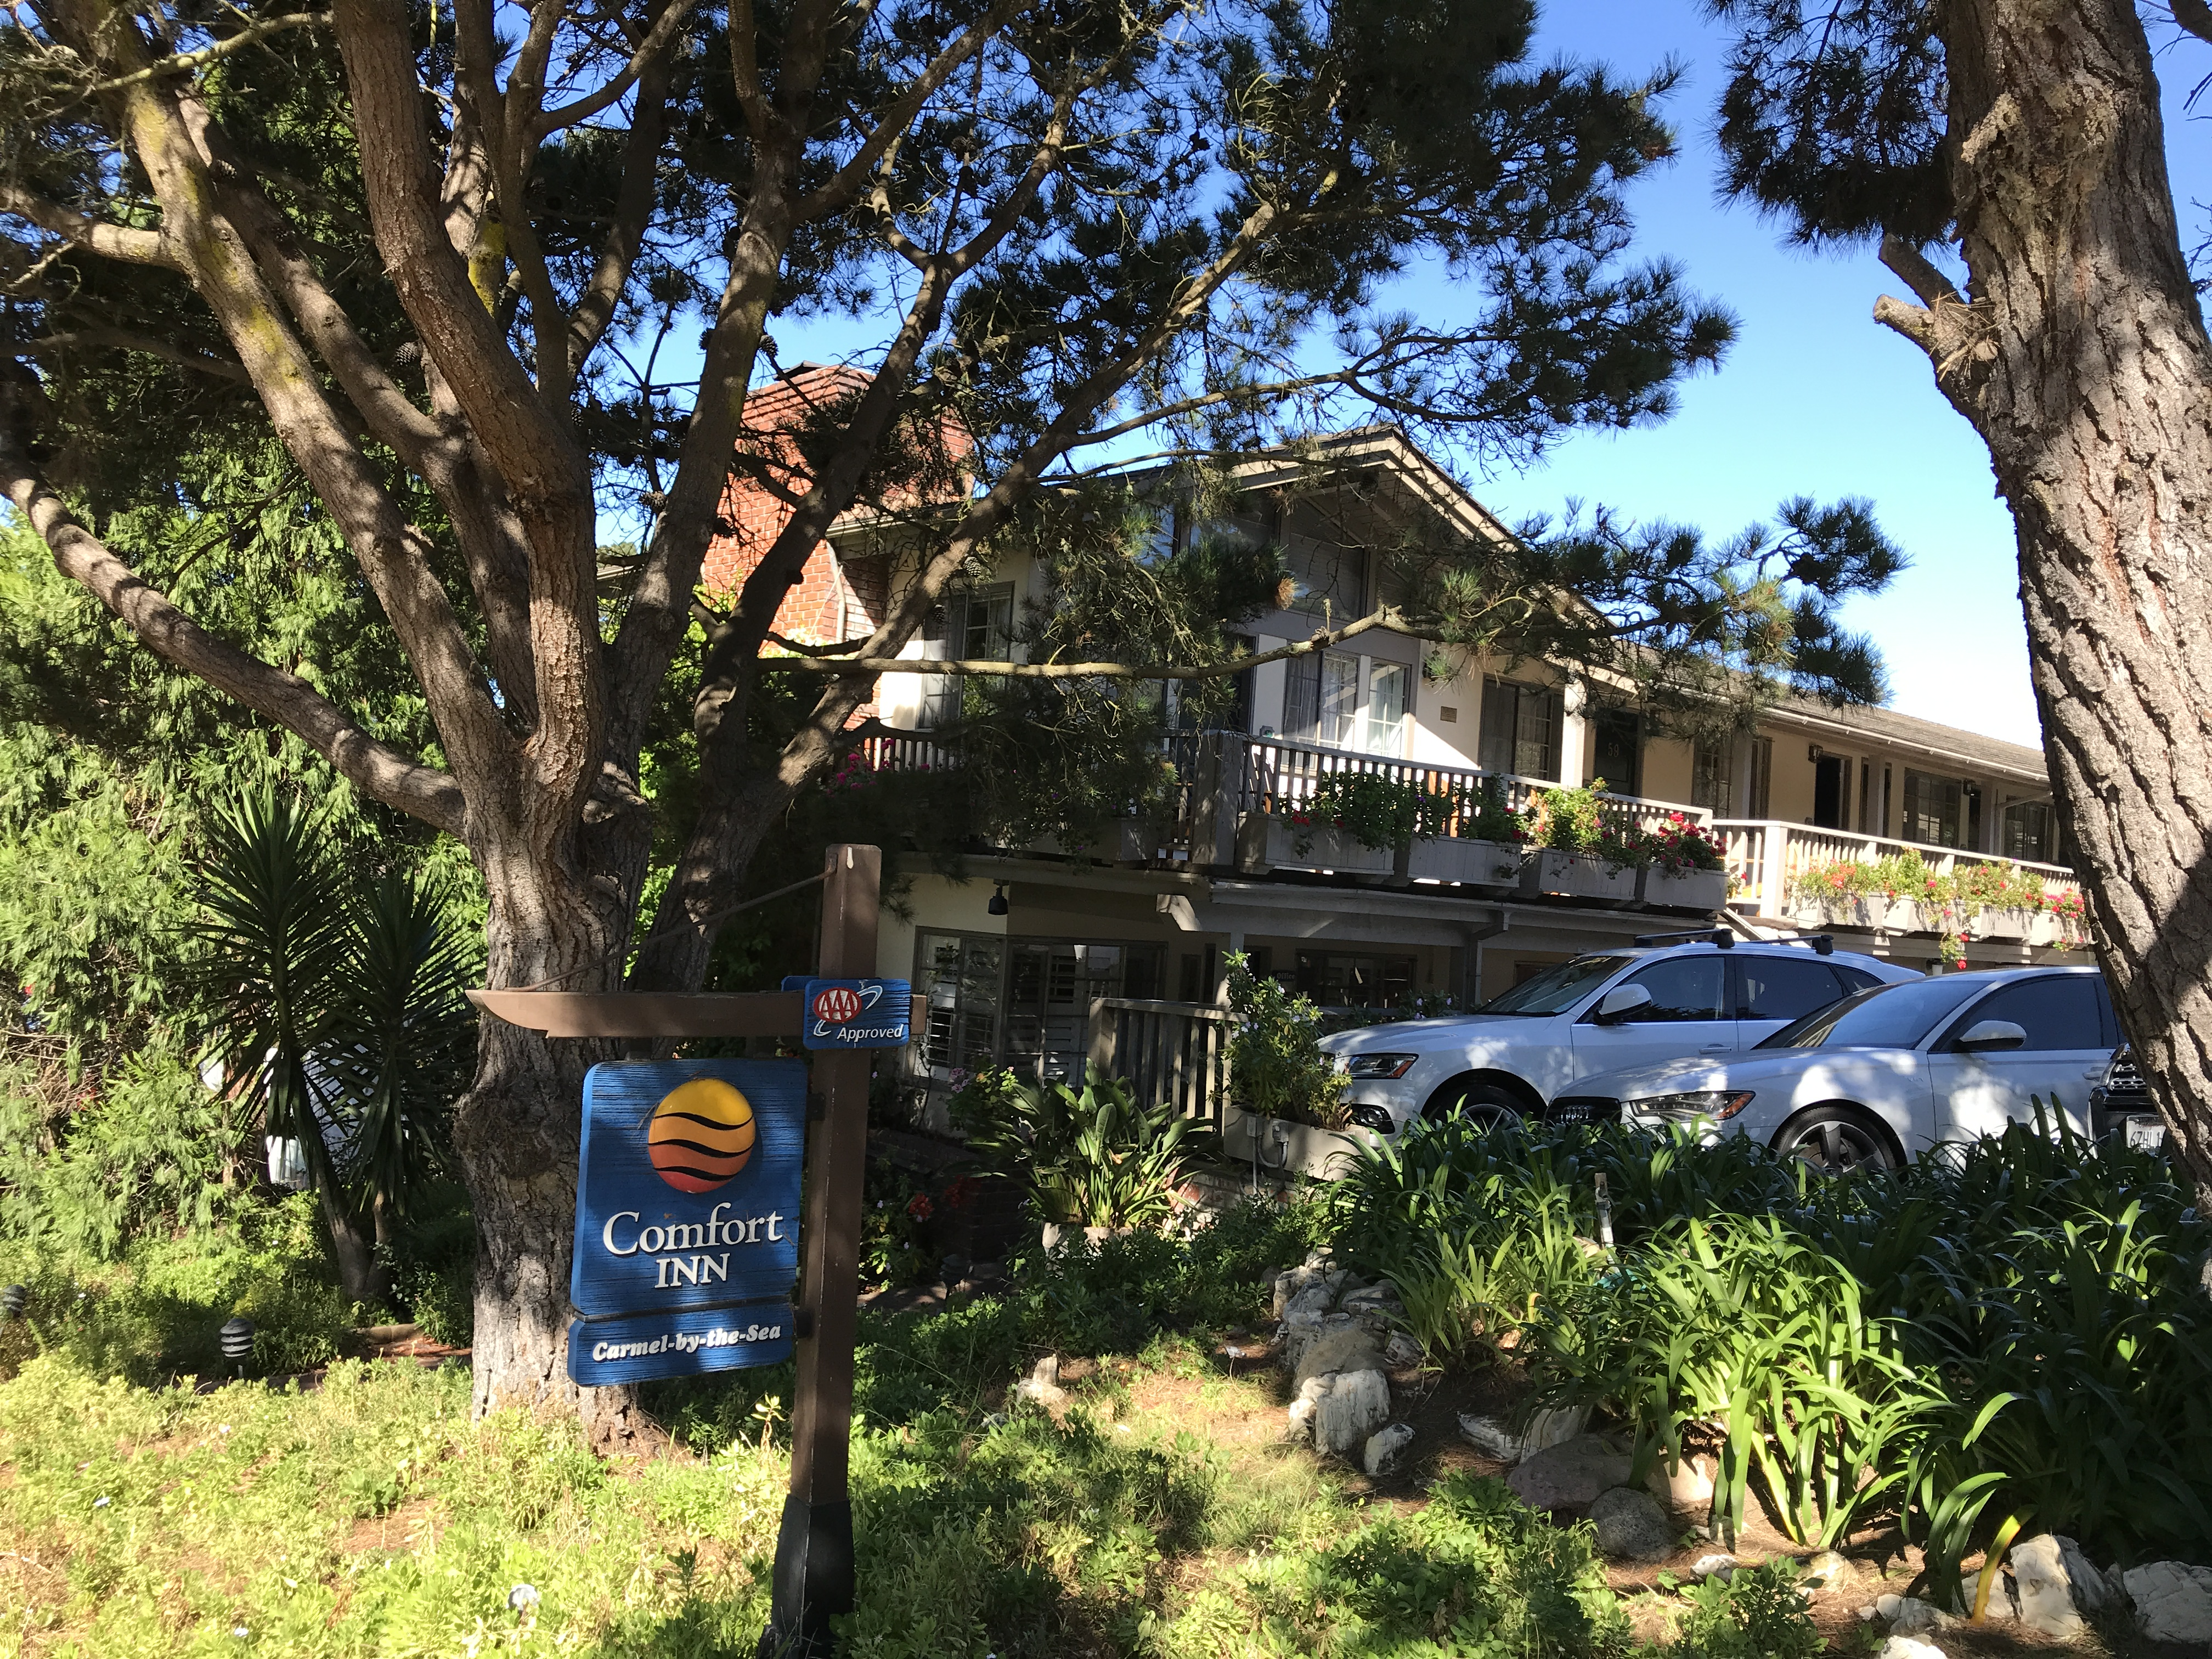 Hotel Review Comfort Inn Carmel By The Sea 48 000 Points